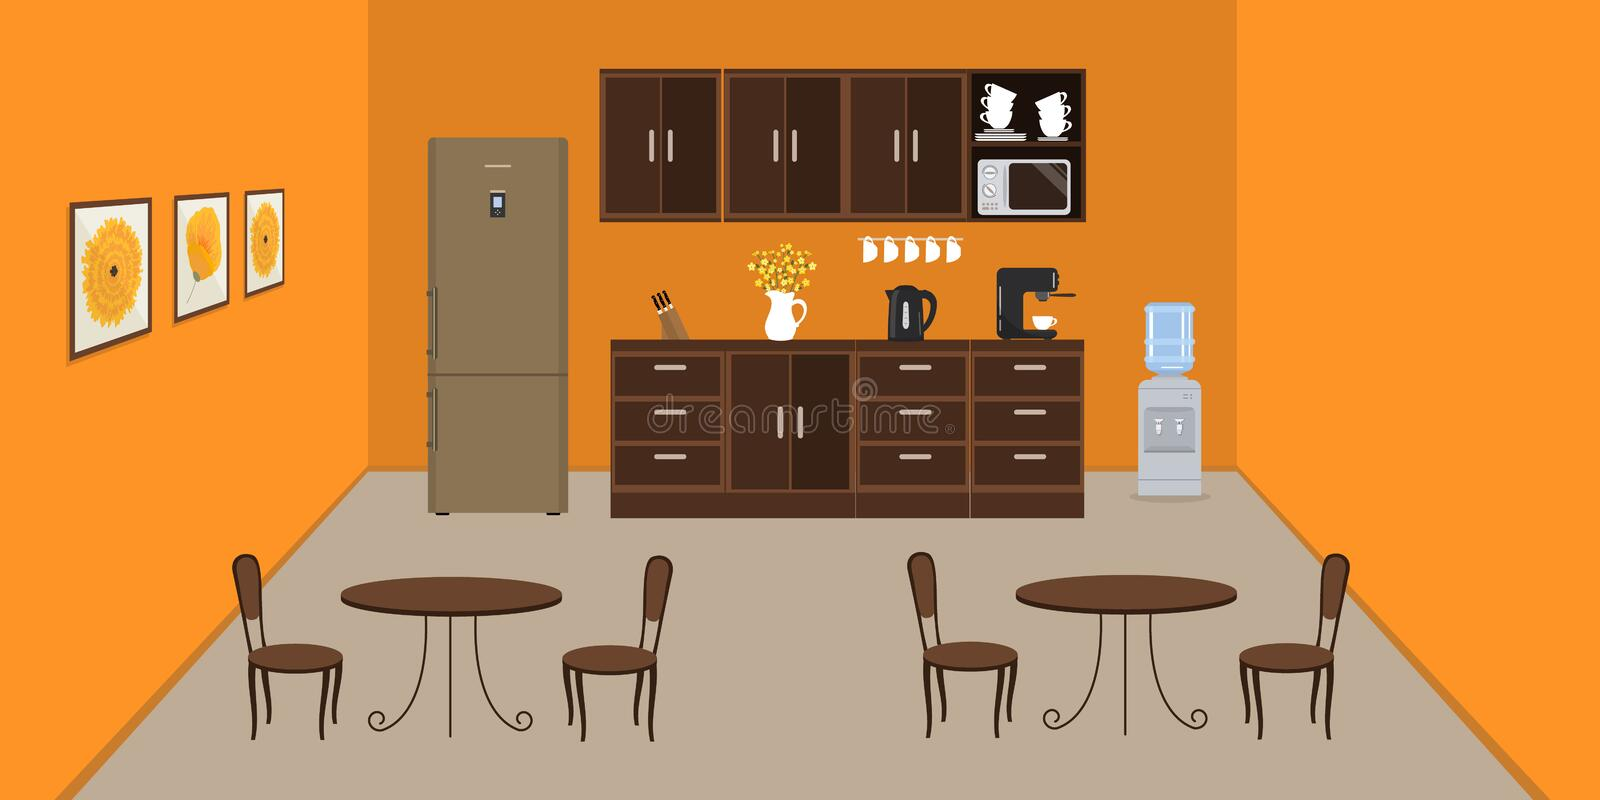 Office kitchen in orange color. Modern dining room in the office. There is a fridge, tables, chairs, a microwave, a kettle and a coffee machine in the image vector illustration